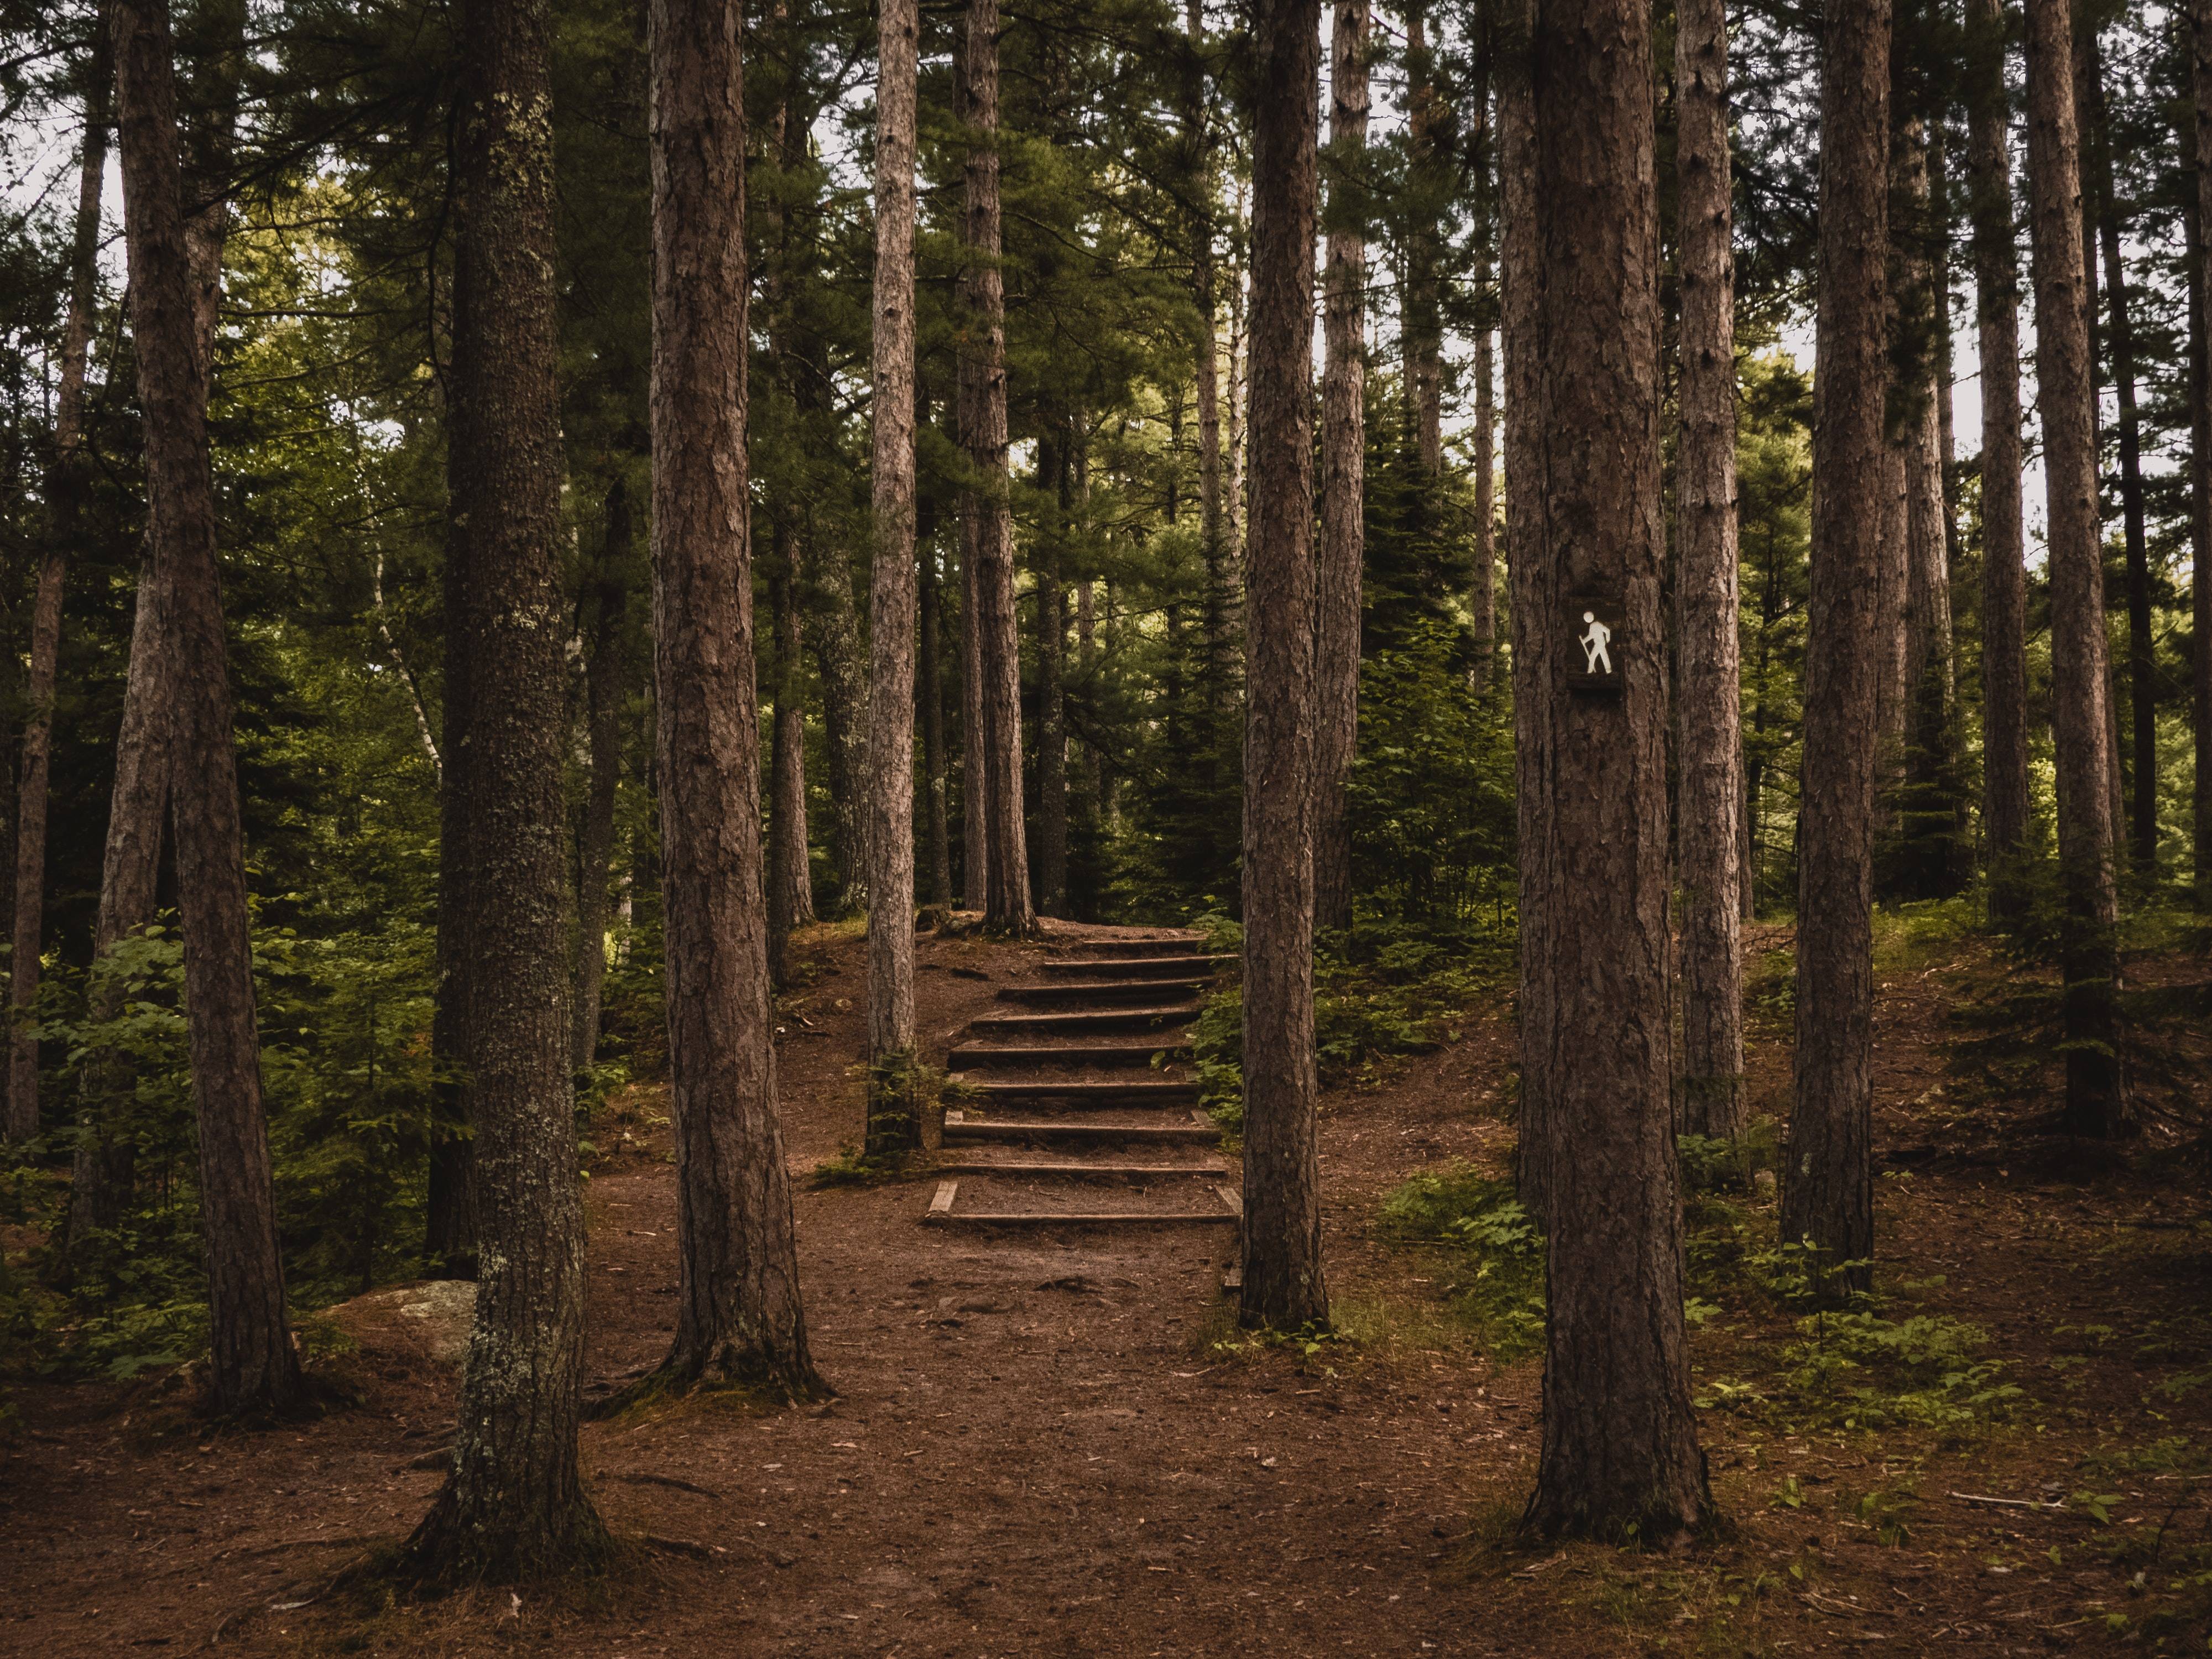 Wooden steps in an evergreen forest